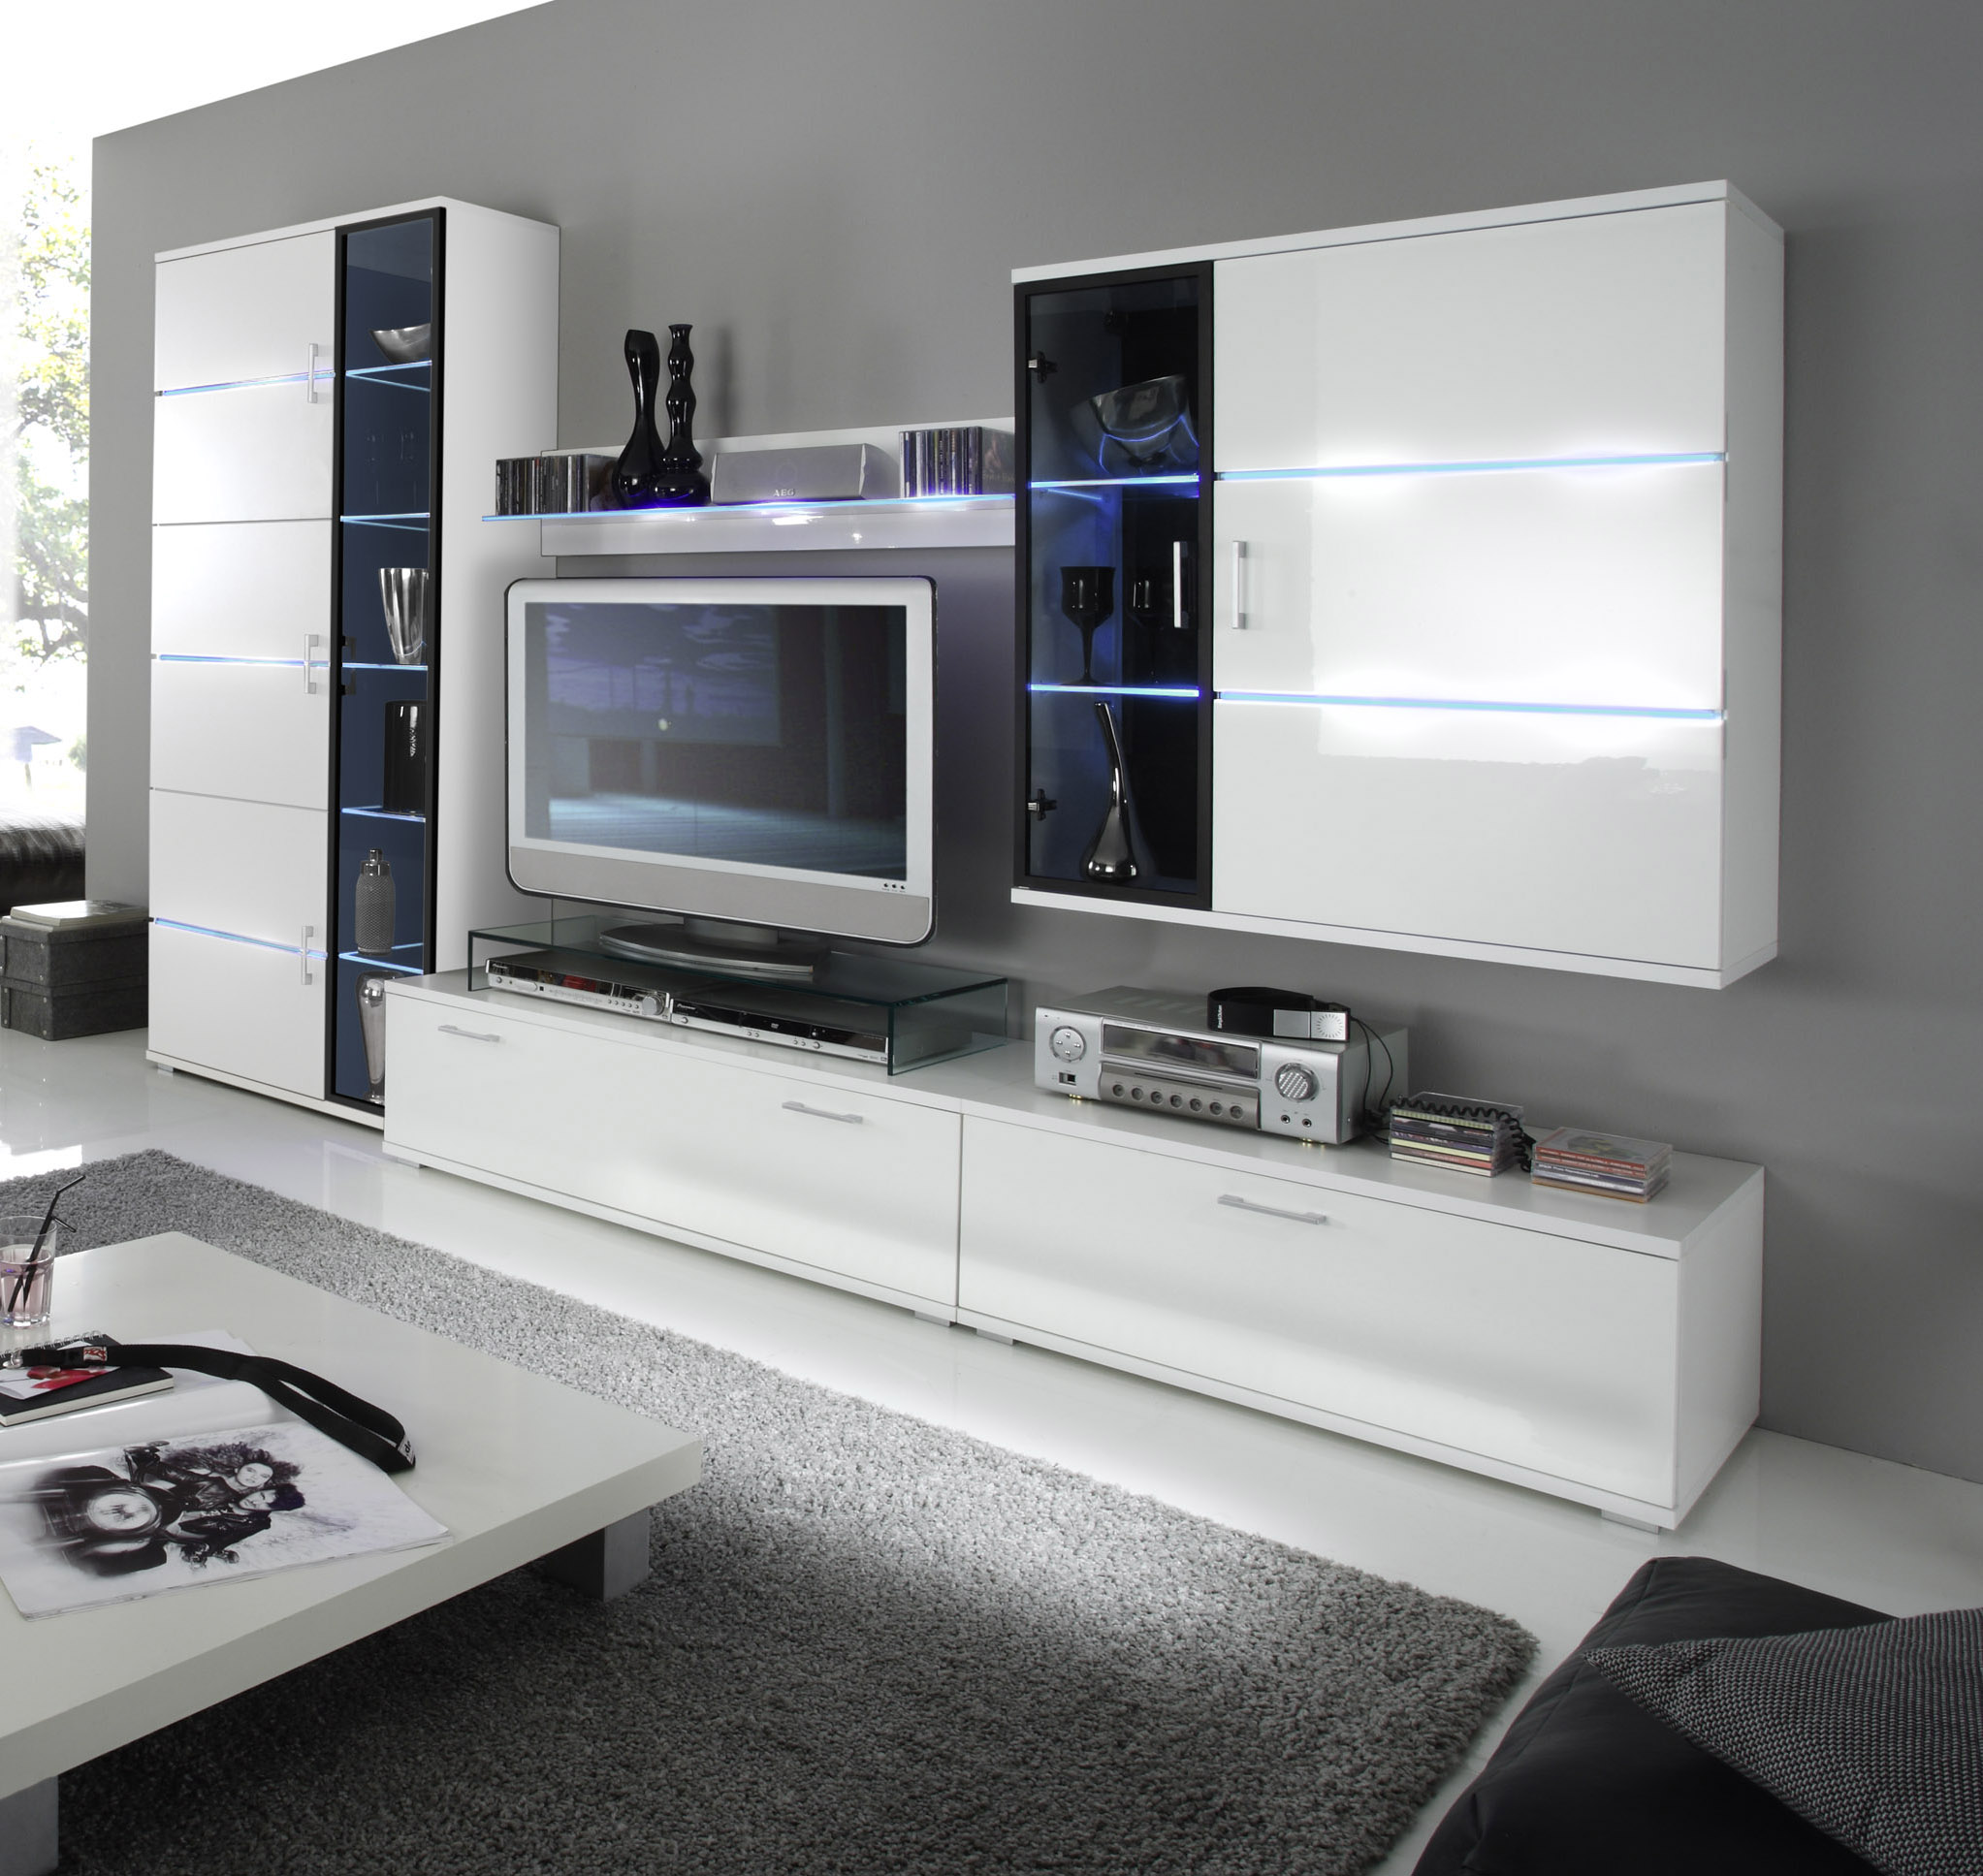 maya wohnwand 951 wei hochglanz preiswert. Black Bedroom Furniture Sets. Home Design Ideas